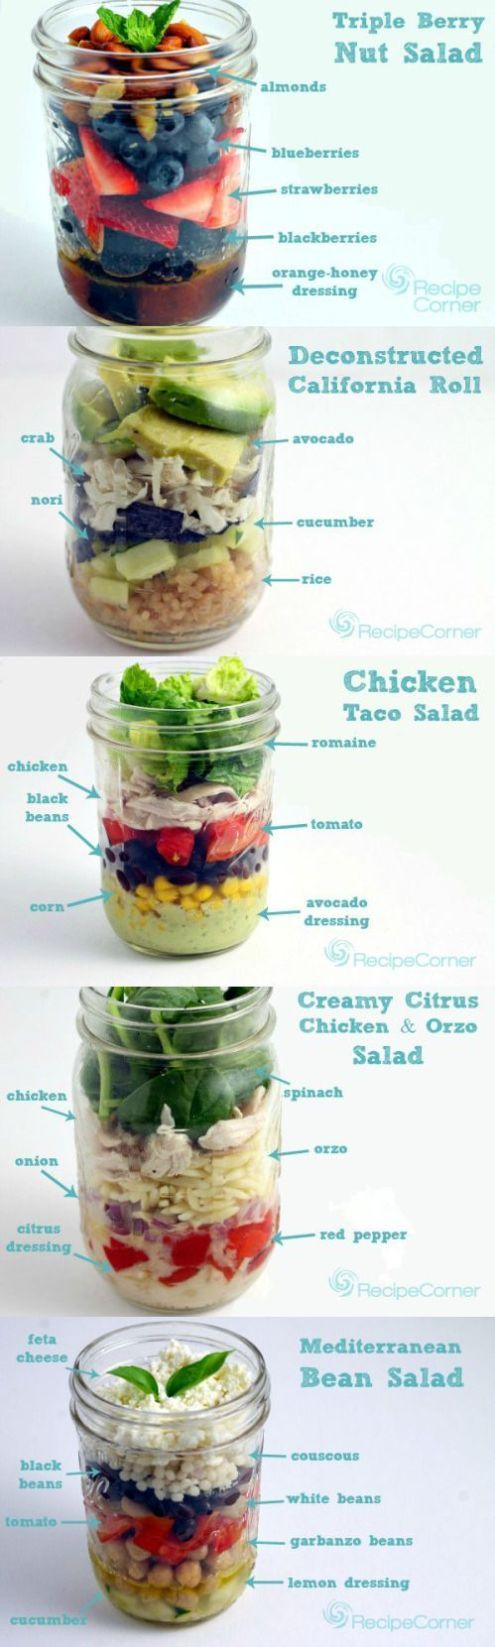 best lunch box images on pinterest kitchens clean eating